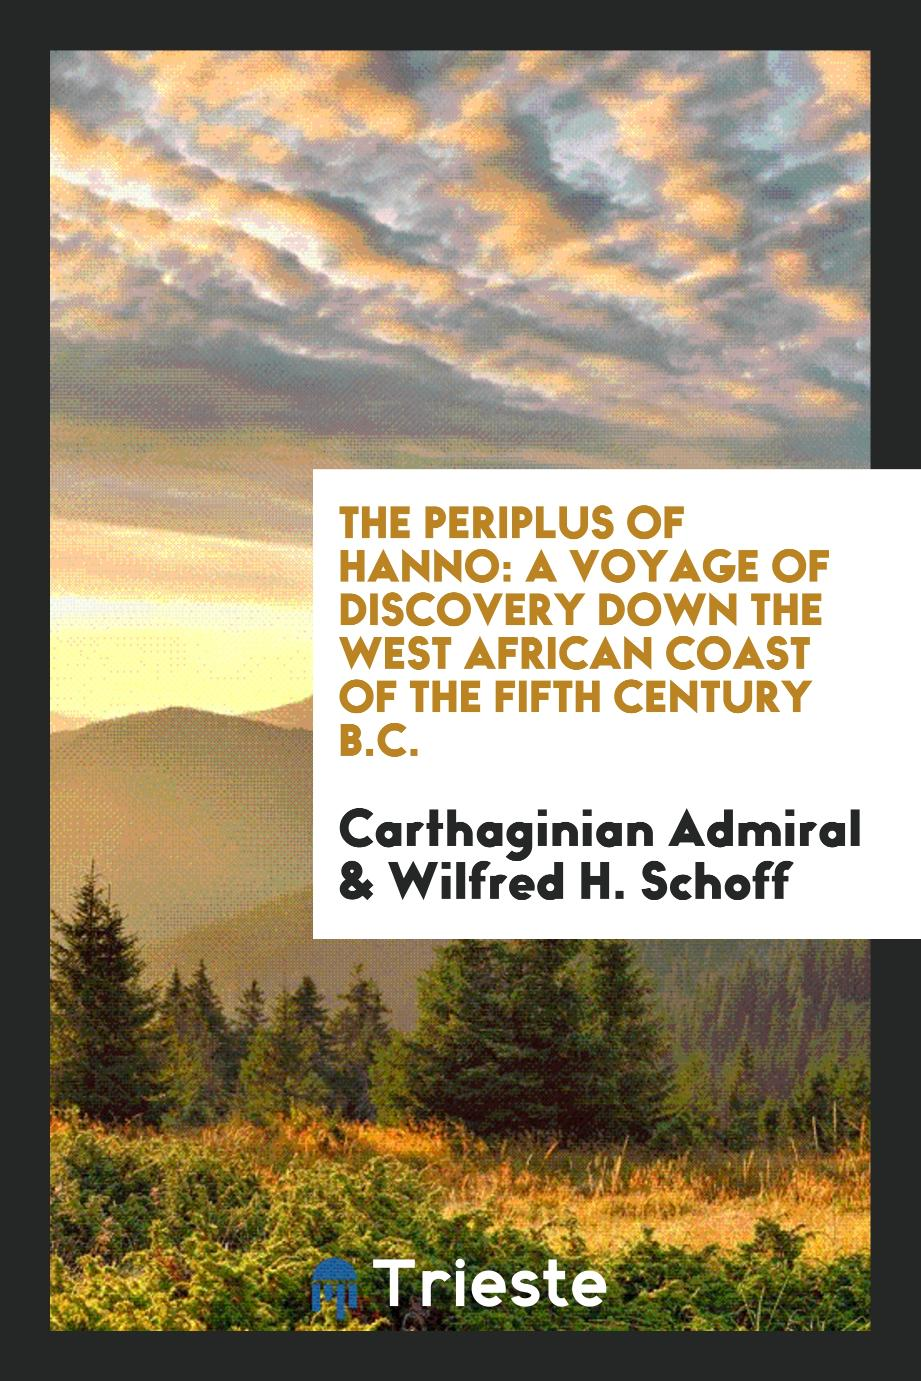 The Periplus of Hanno: A Voyage of Discovery Down the West African Coast of the fifth century B.C.